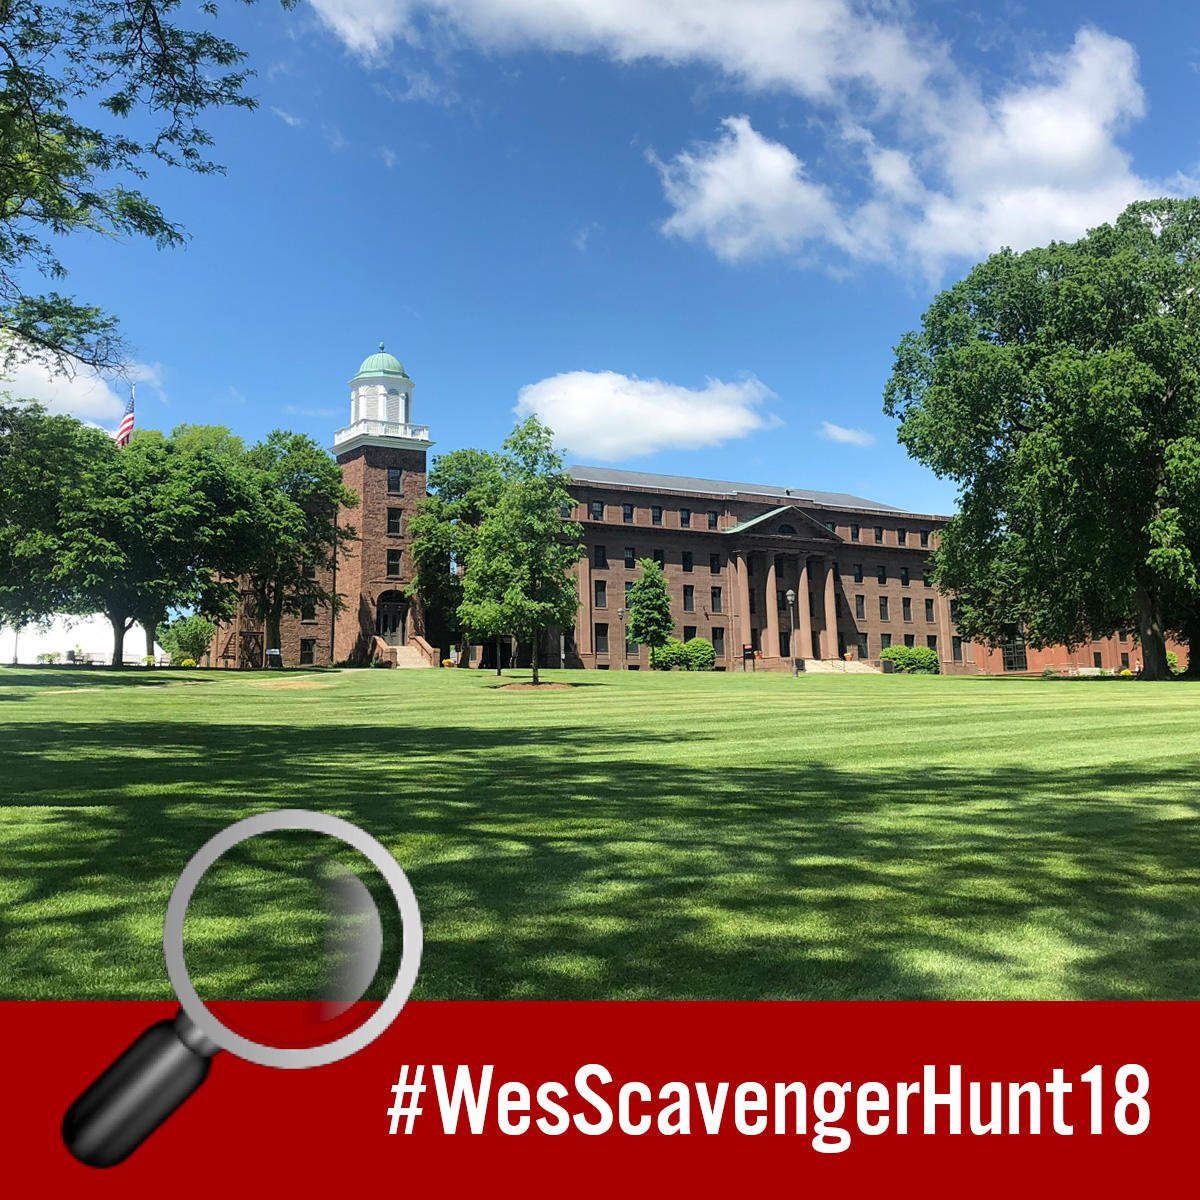 test Twitter Media - 🔍 Clue 1: Take a shoe selfie 👟 with a mosaic in the entrance of the building named after the first president of Wesleyan University. #WesScavengerHunt18 #NationalScavengerHuntDay   More clues: https://t.co/iwQIXnDb7K https://t.co/XGxc00RTtk